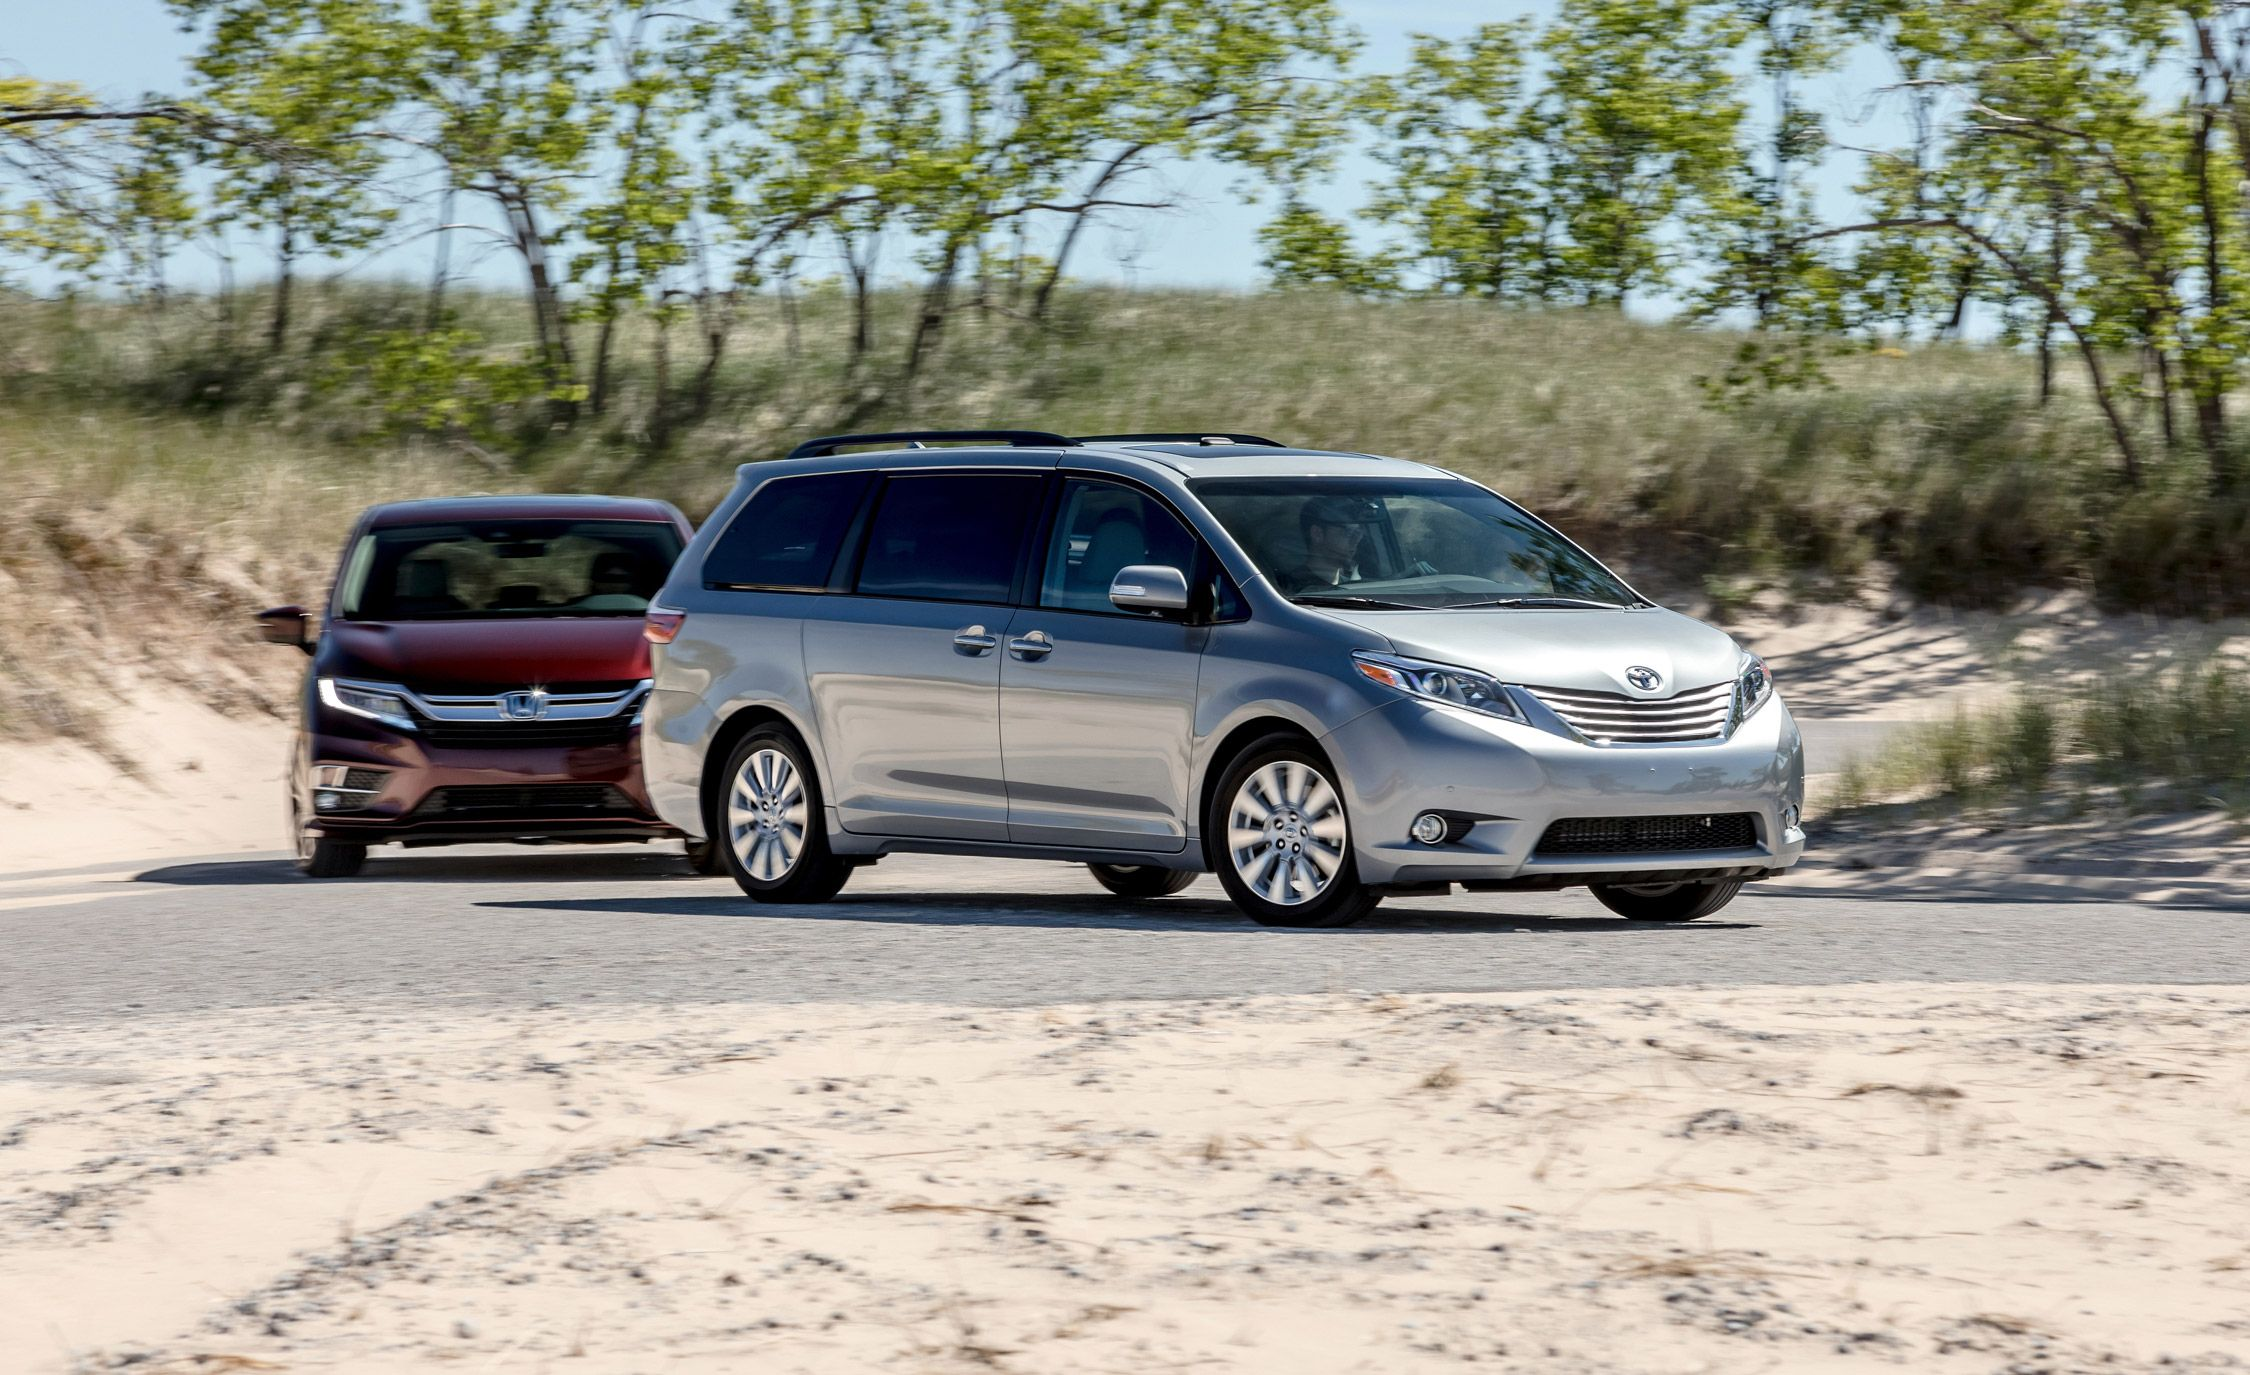 Toyota Sienna Service Manual: Room light assembly